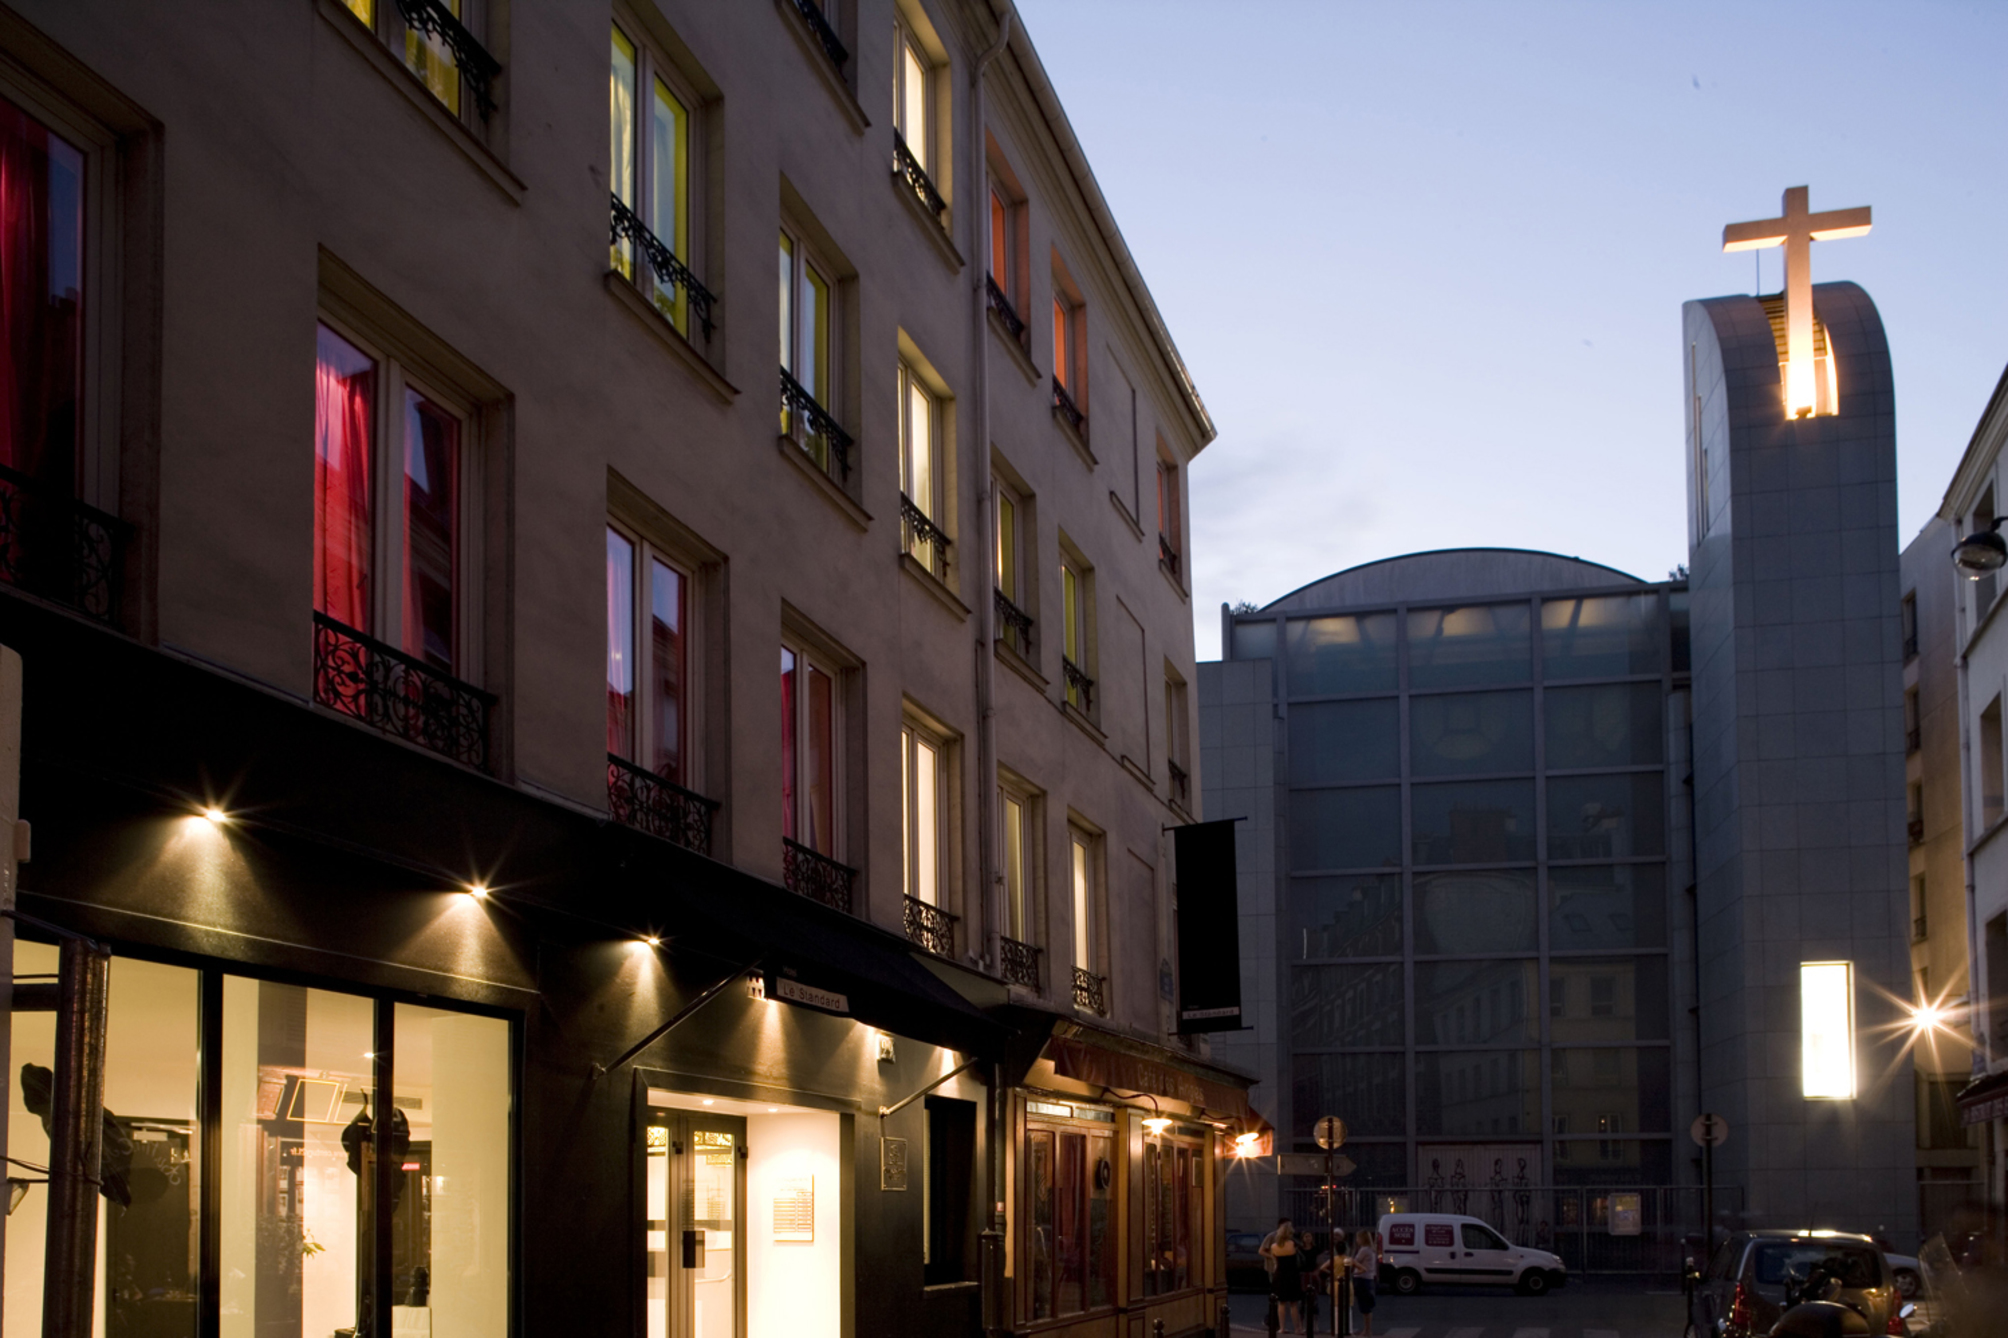 Hotel standard design en paris desde 66 rumbo for Standard design hotel